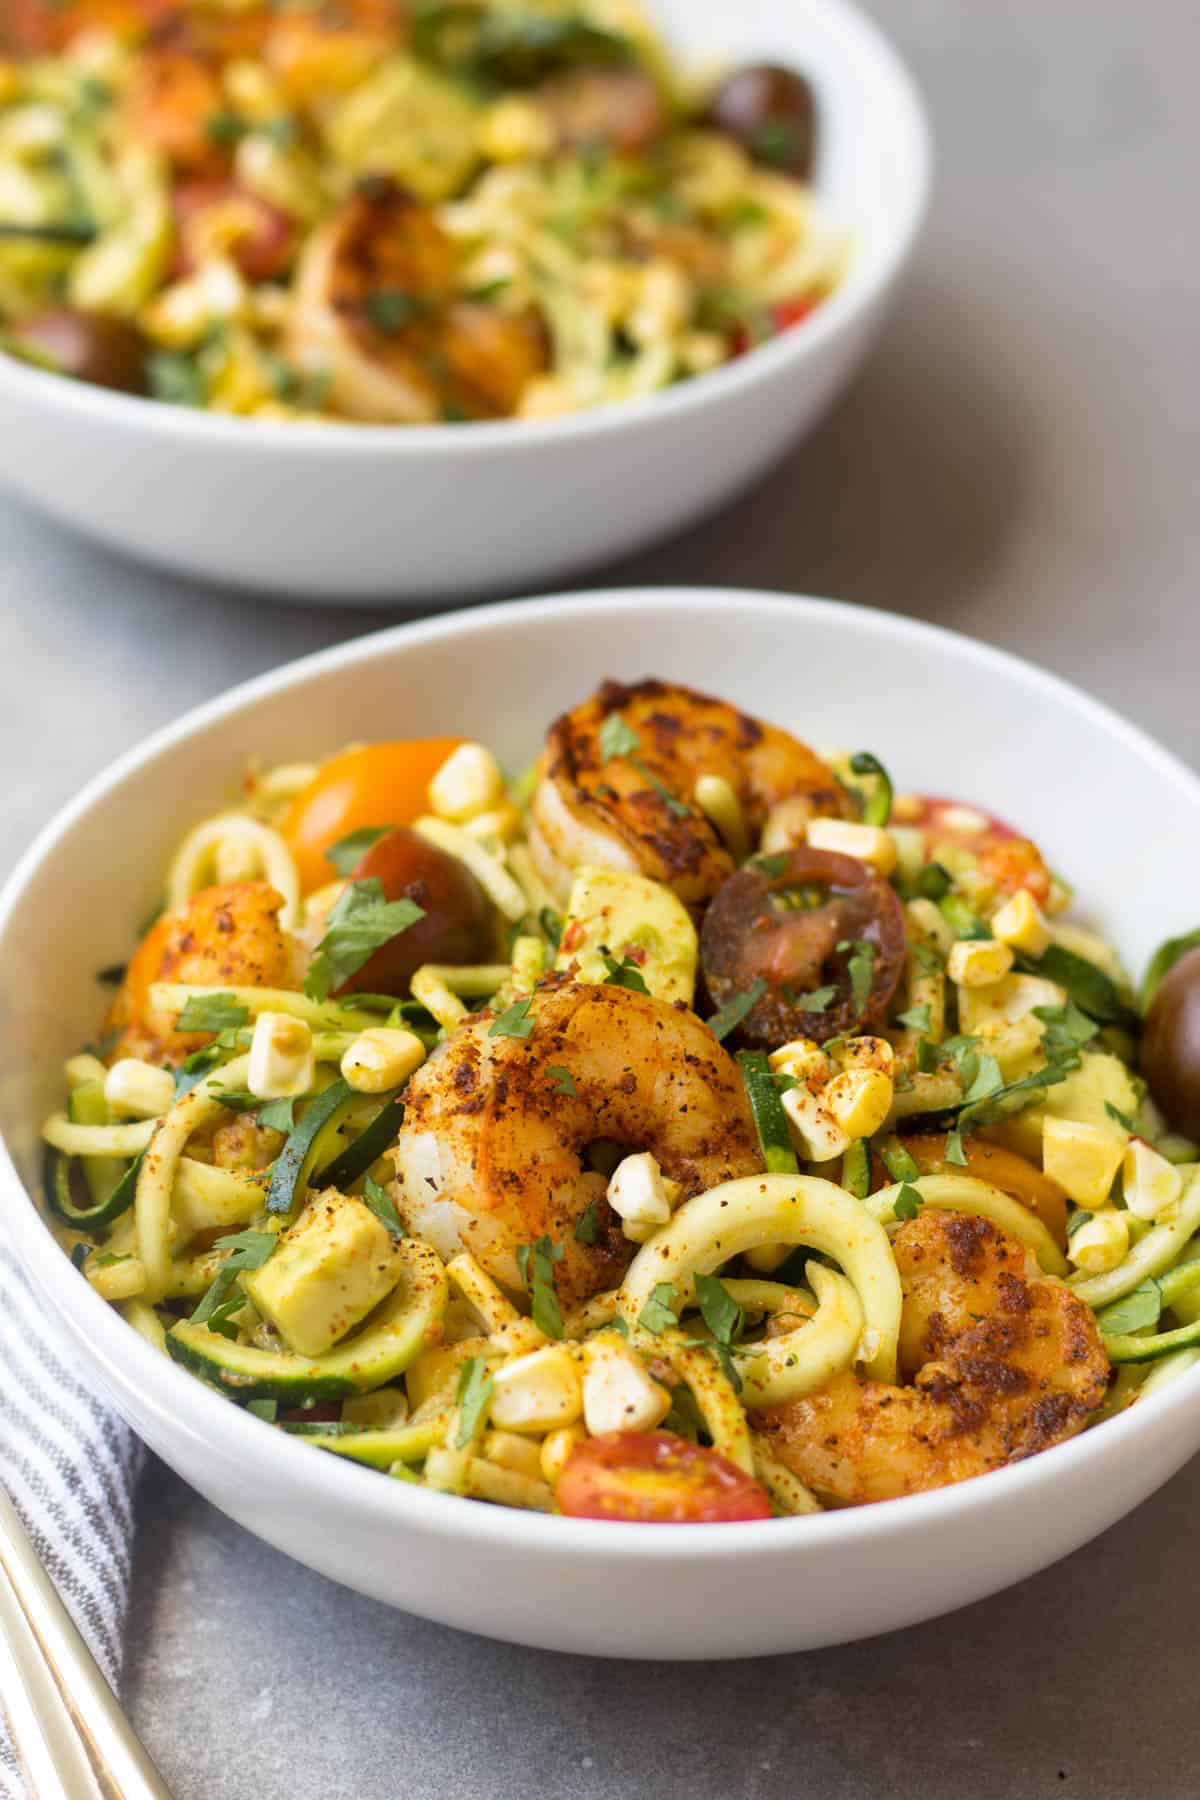 These Southwest Shrimp Zucchini Noodles are an easy and light summer dish packed with protein and seasonal vegetables. - Eat the Gains